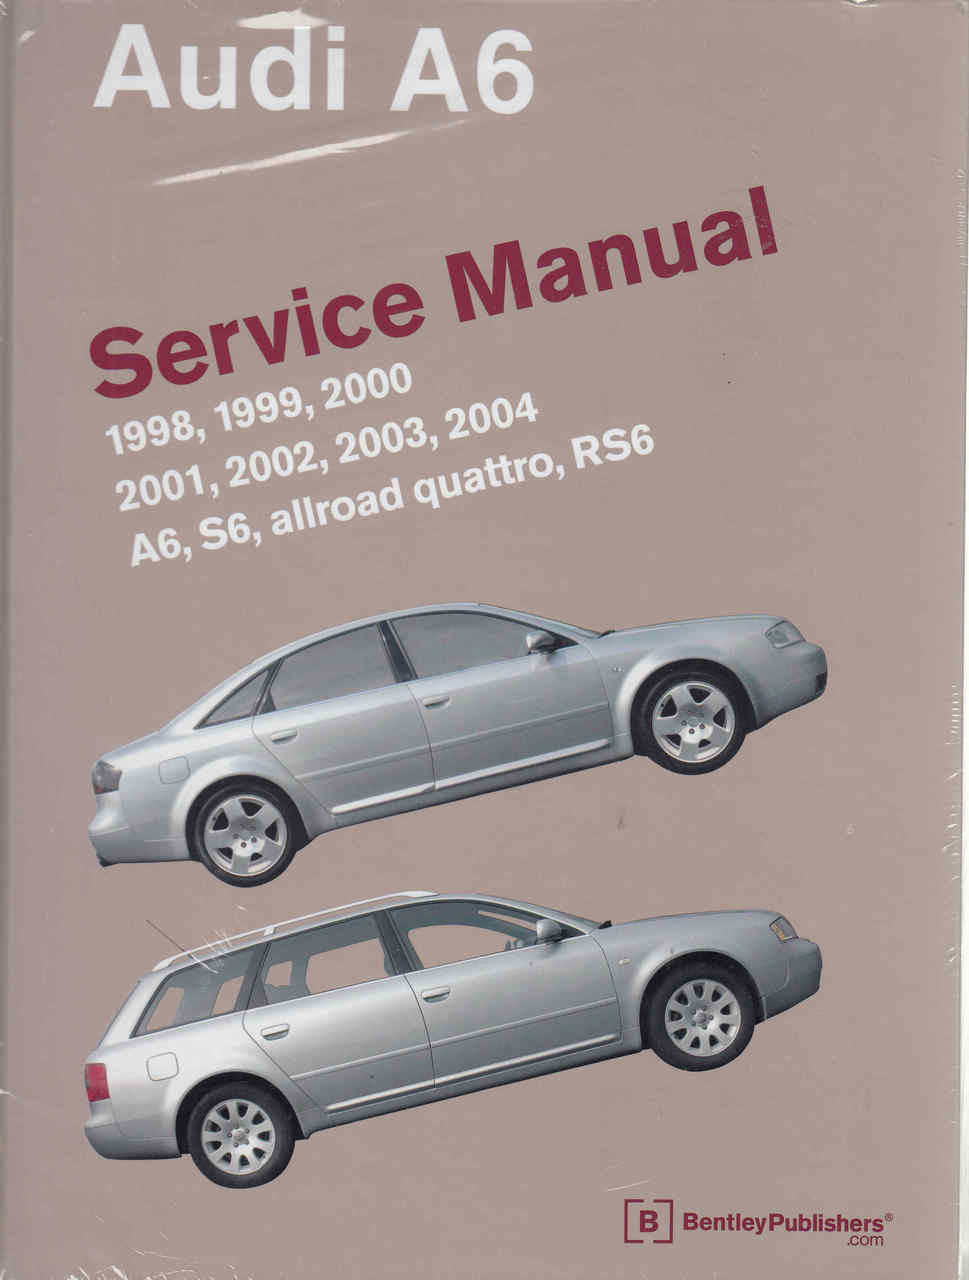 Audi A6, S6, Allroad Quattro, RS6 1998 - 2004 Service Manual - front ...